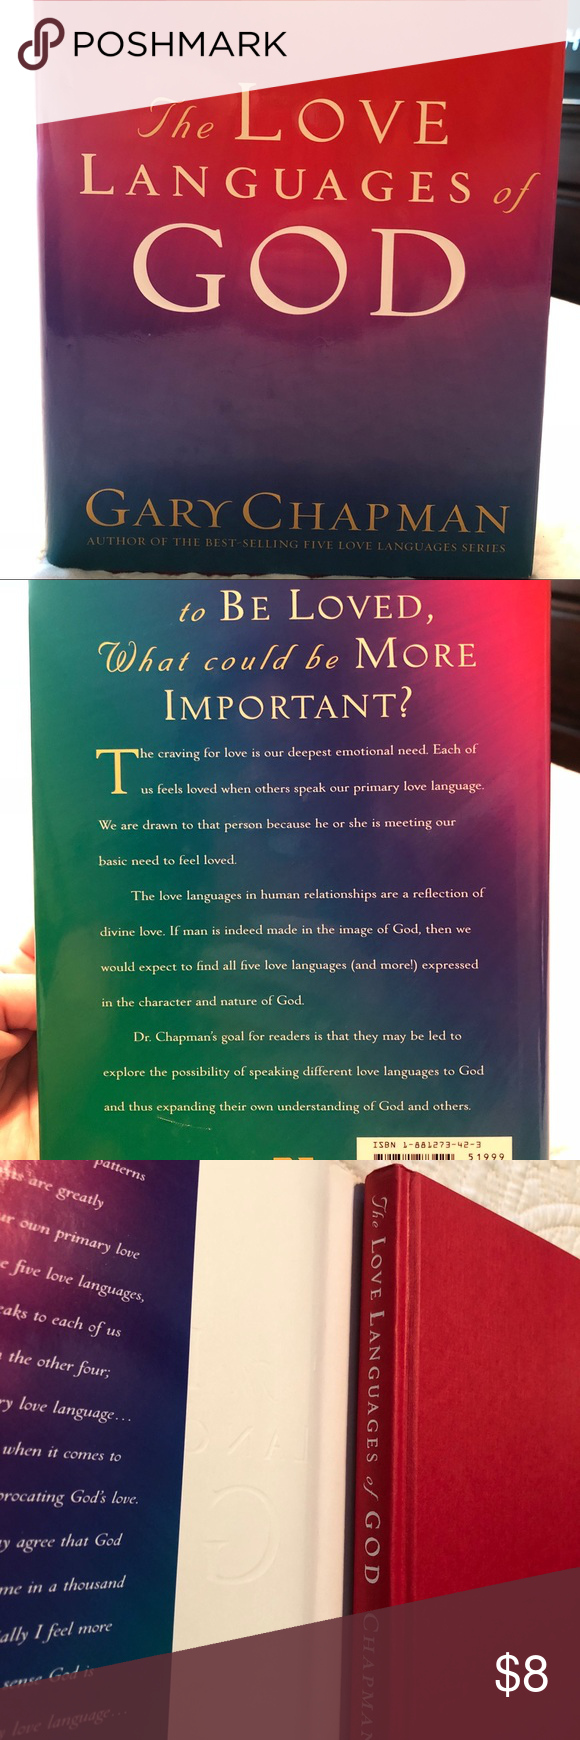 The Love Languages Of Book By Gary Chapman No Torn Or Creased Pages Great Condition Wonderful Read Gary Chapman Other